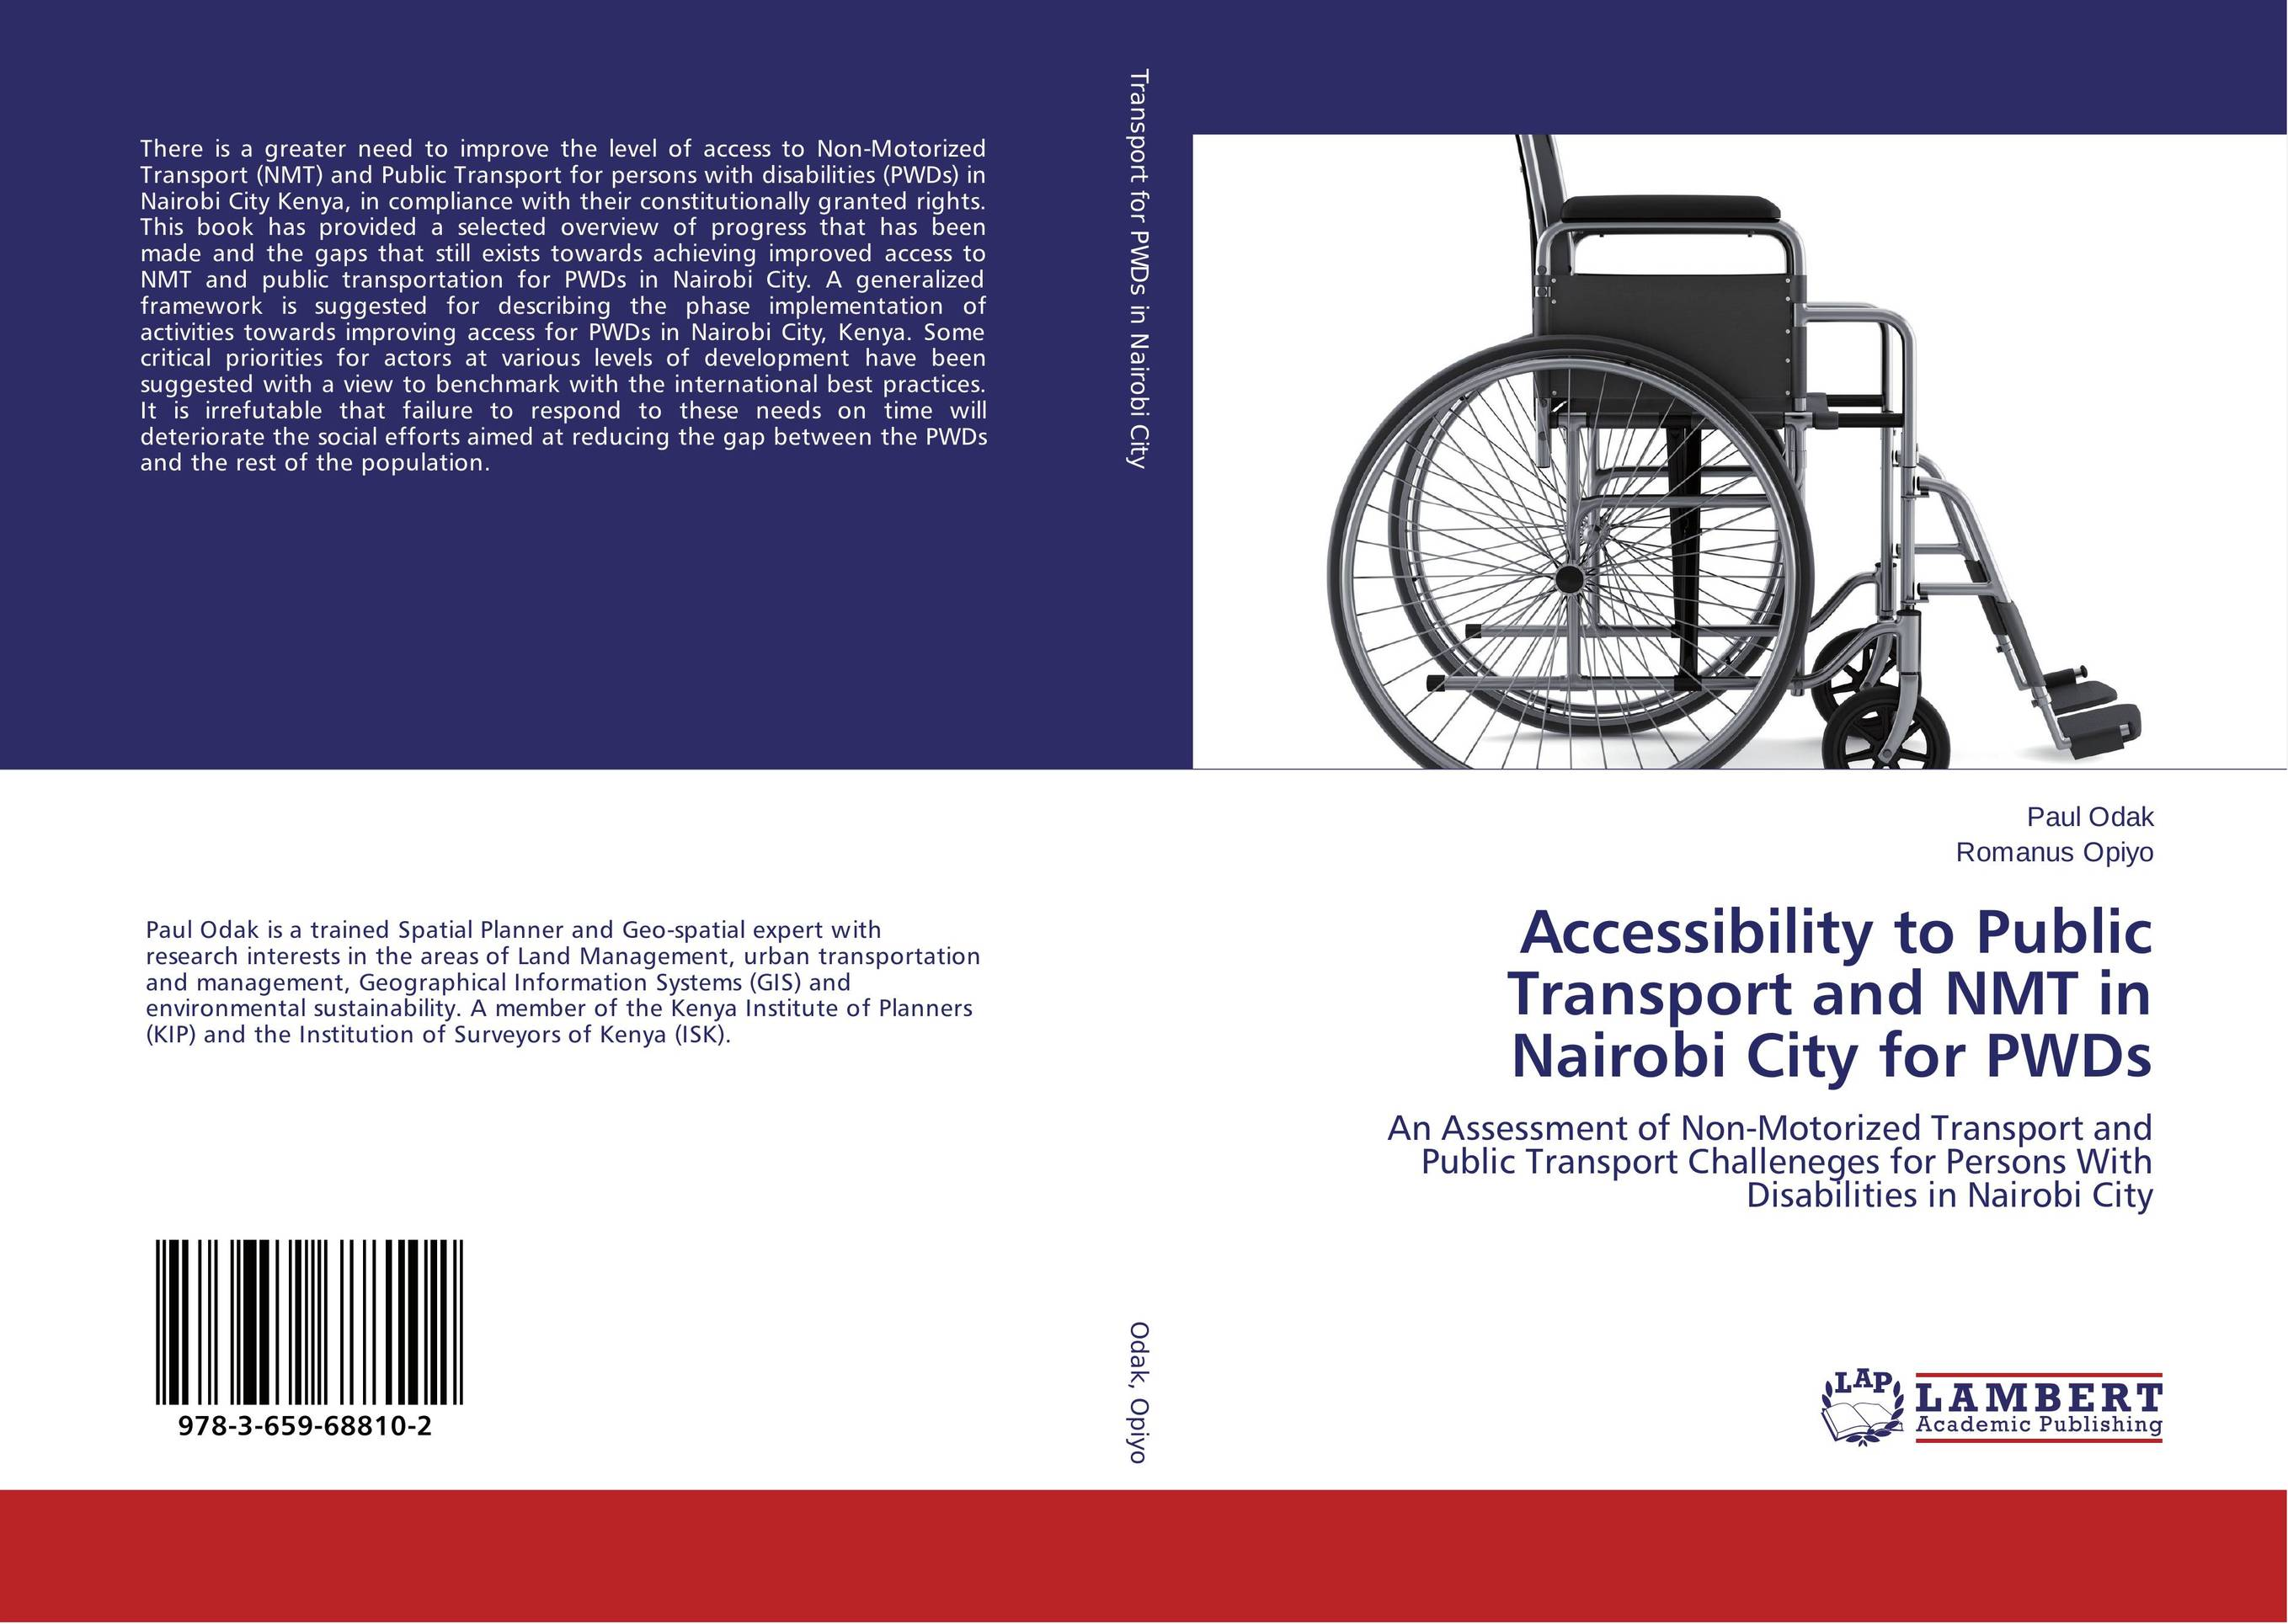 Accessibility to Public Transport and NMT in Nairobi City for PWDs it nairobi 08699 50